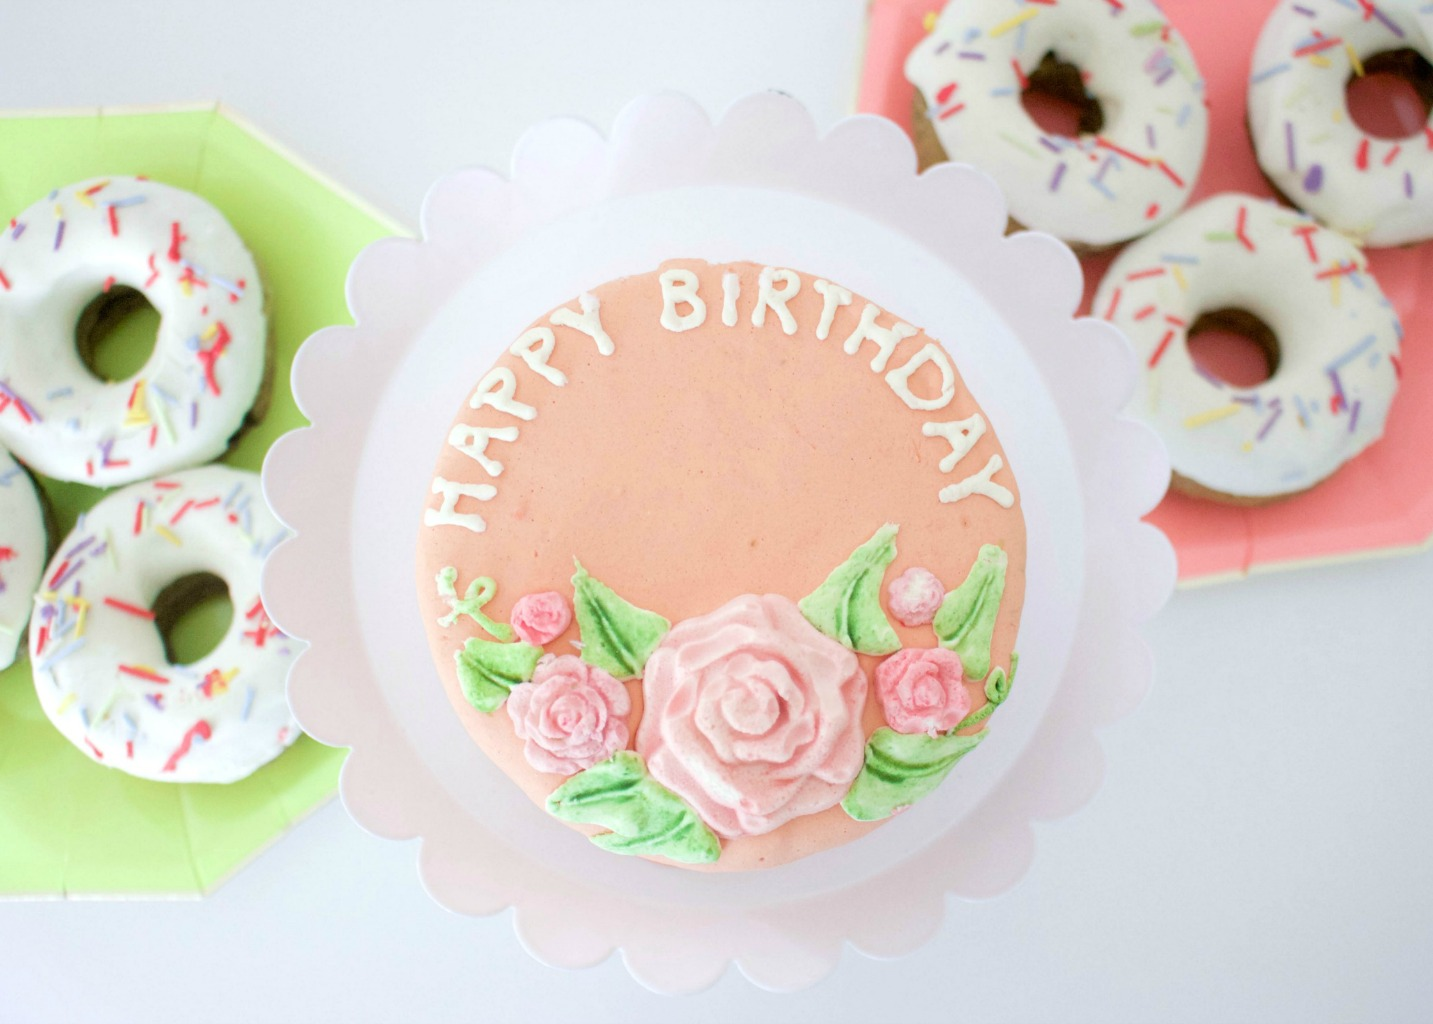 Here Is The Best Way To Celebrate Your Dog's Birthday - Spotted Dog Bakery